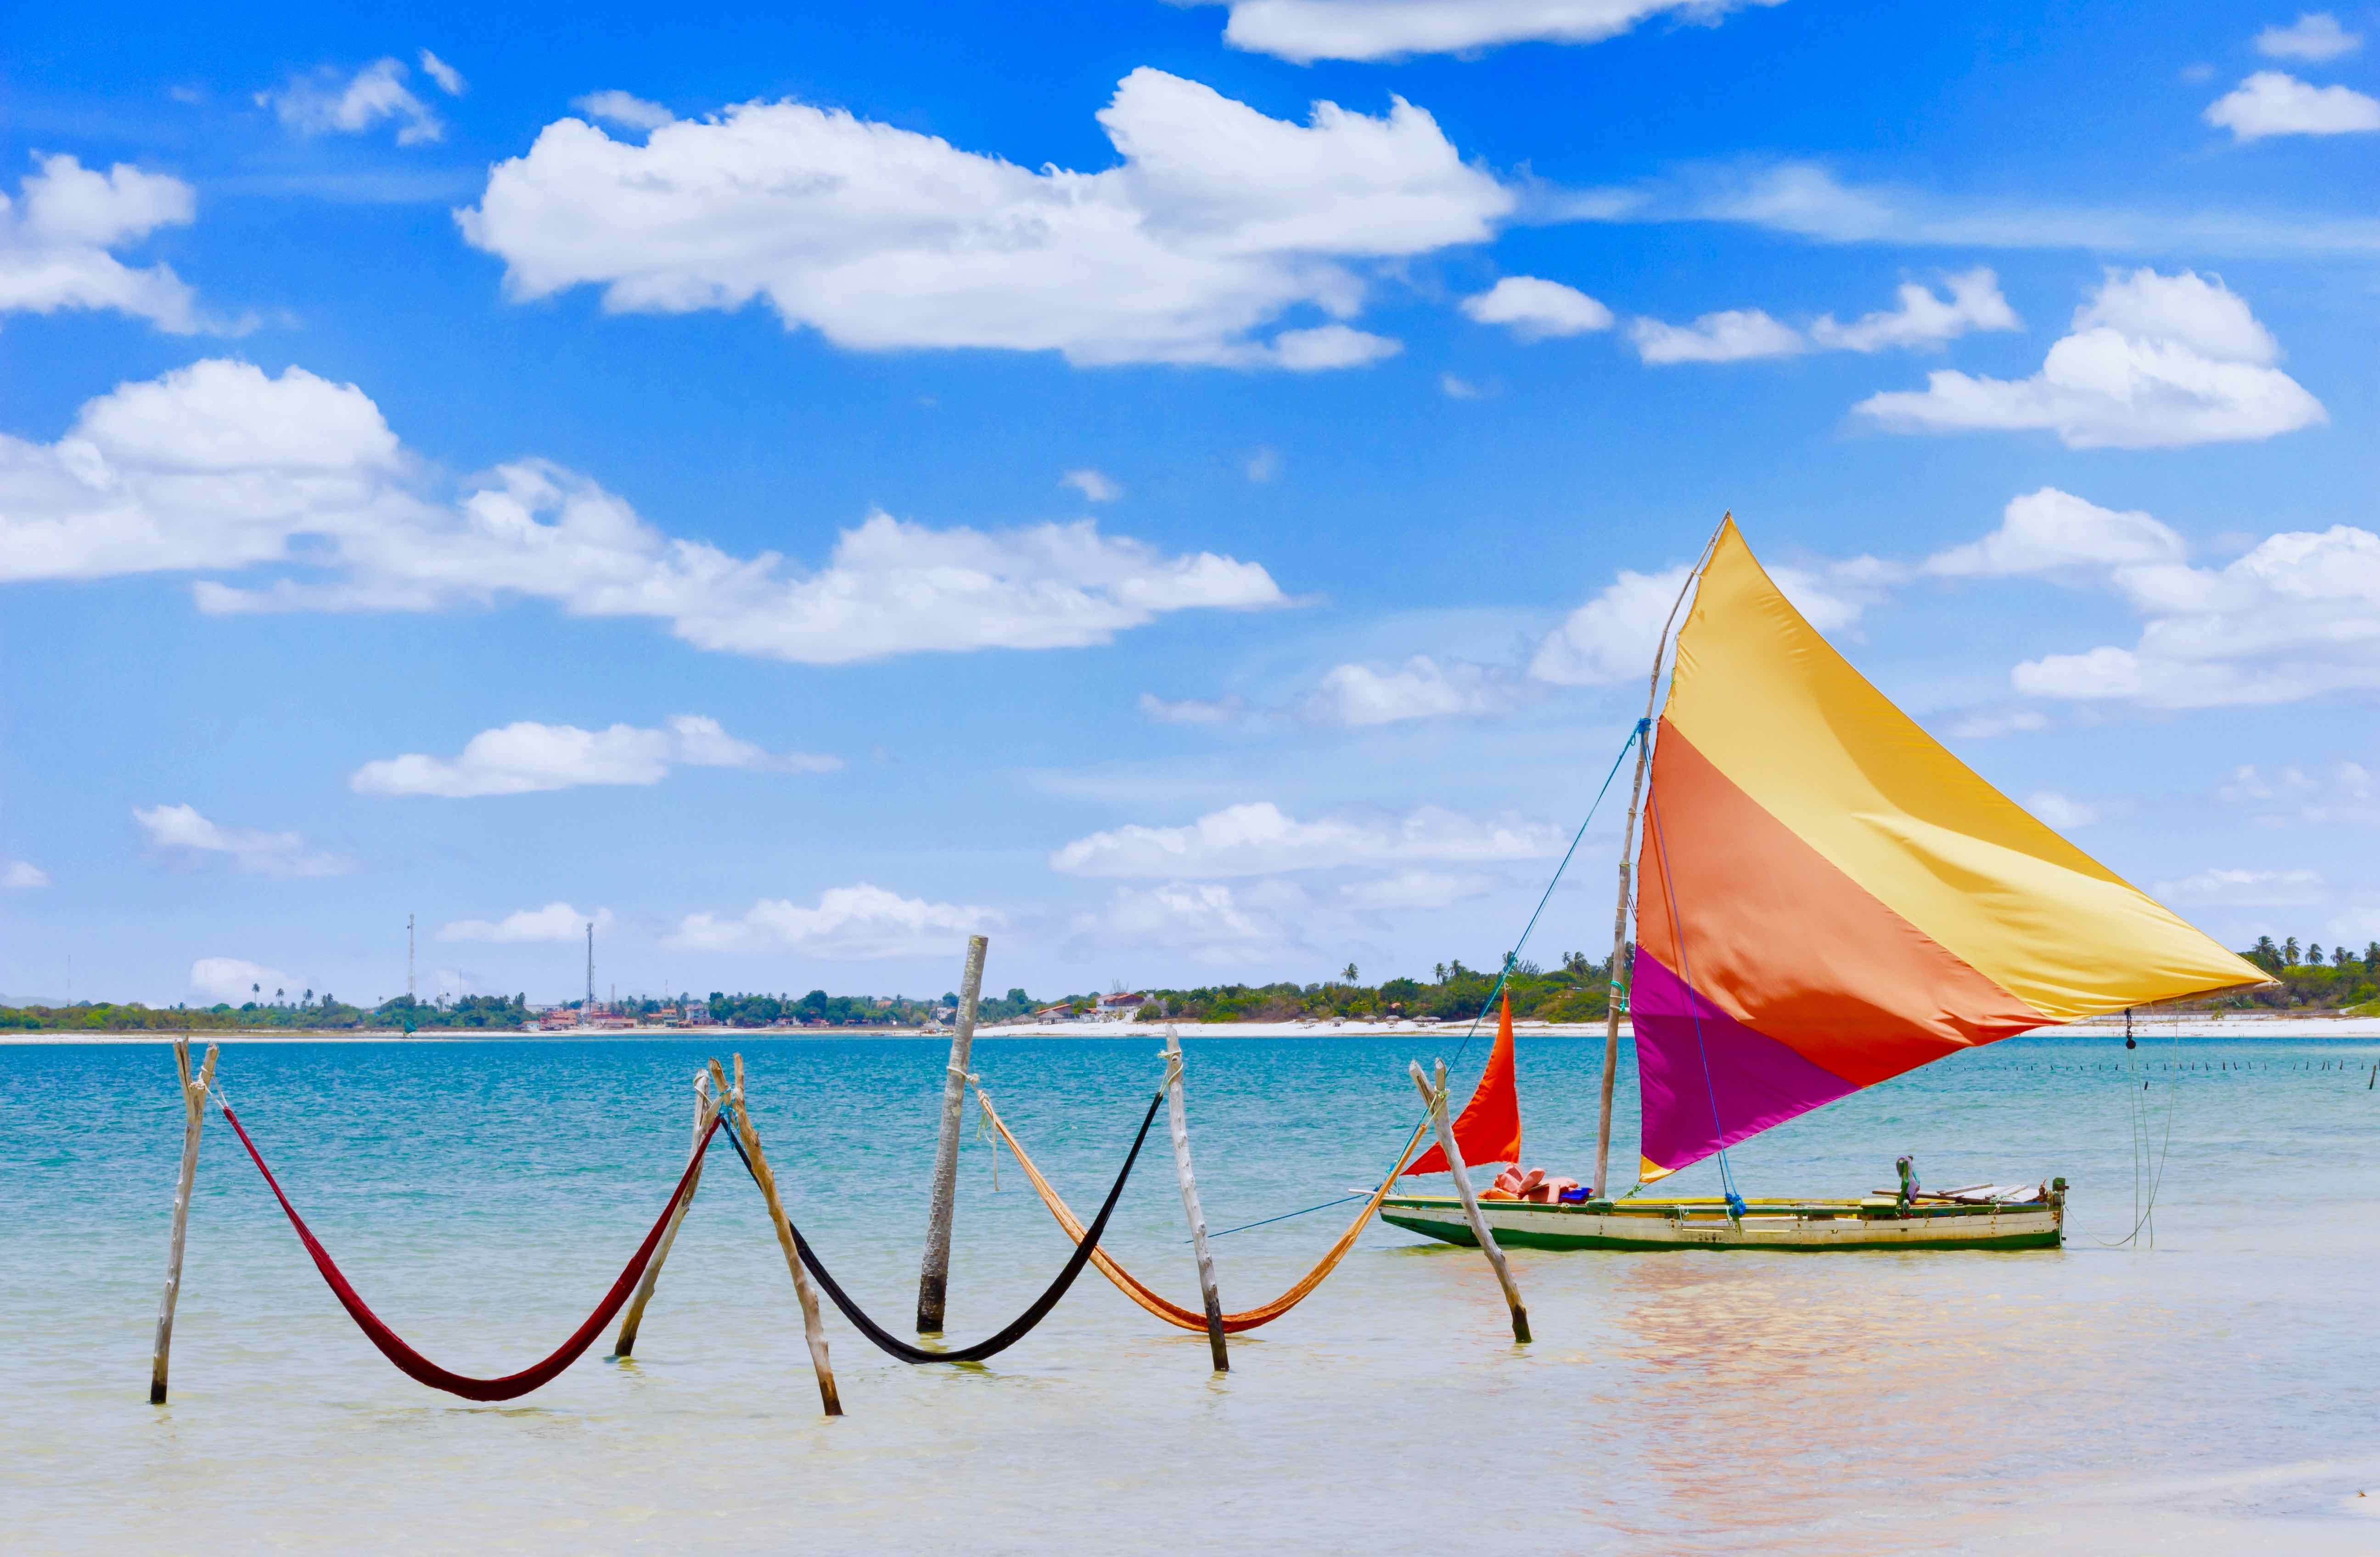 Canva – sail boat and hammocks at Jericoacoara, Brazil